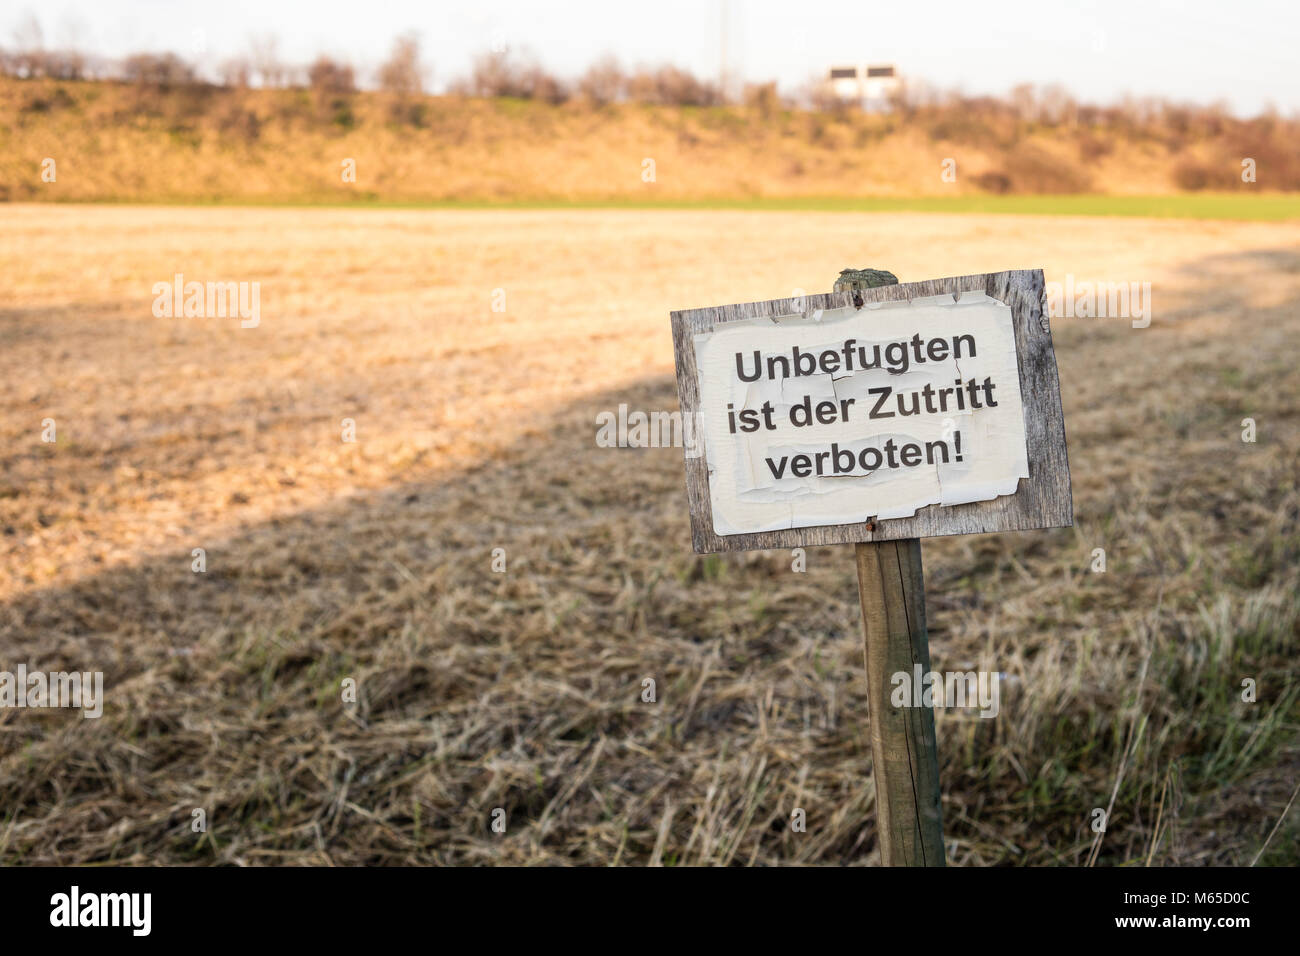 Grunge and old signboard in countryside's crop field with text in german meaning: 'Access to people without - Stock Image